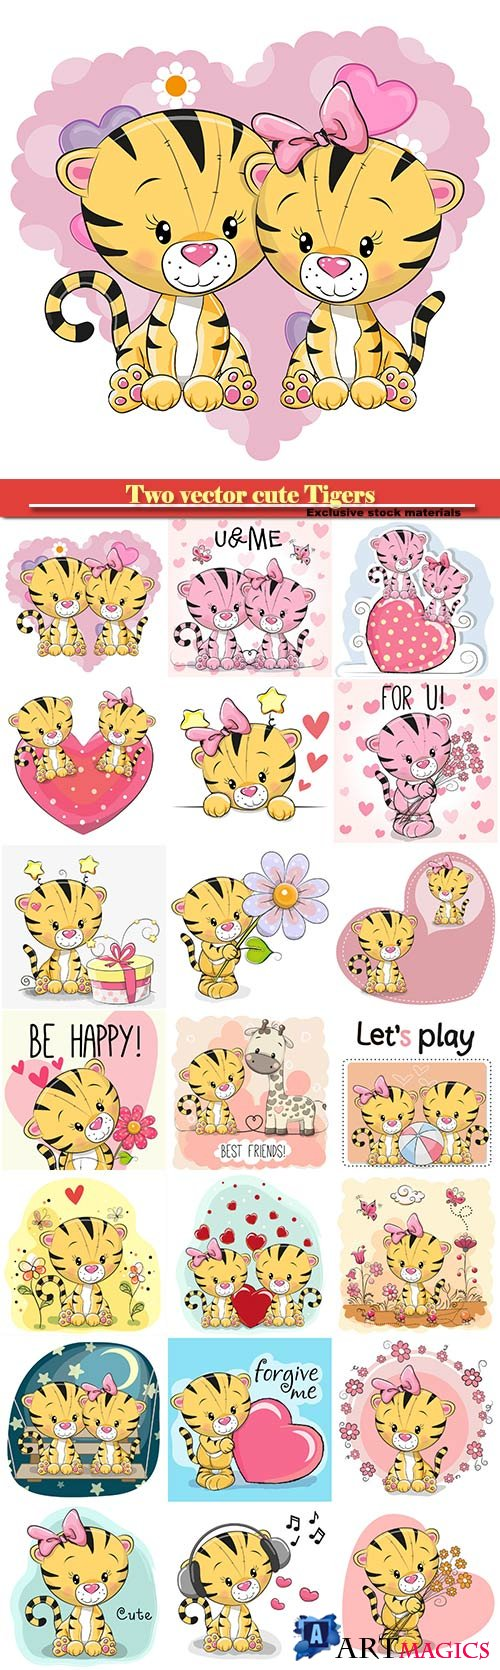 Two vector cute Tigers on a background of heart #2